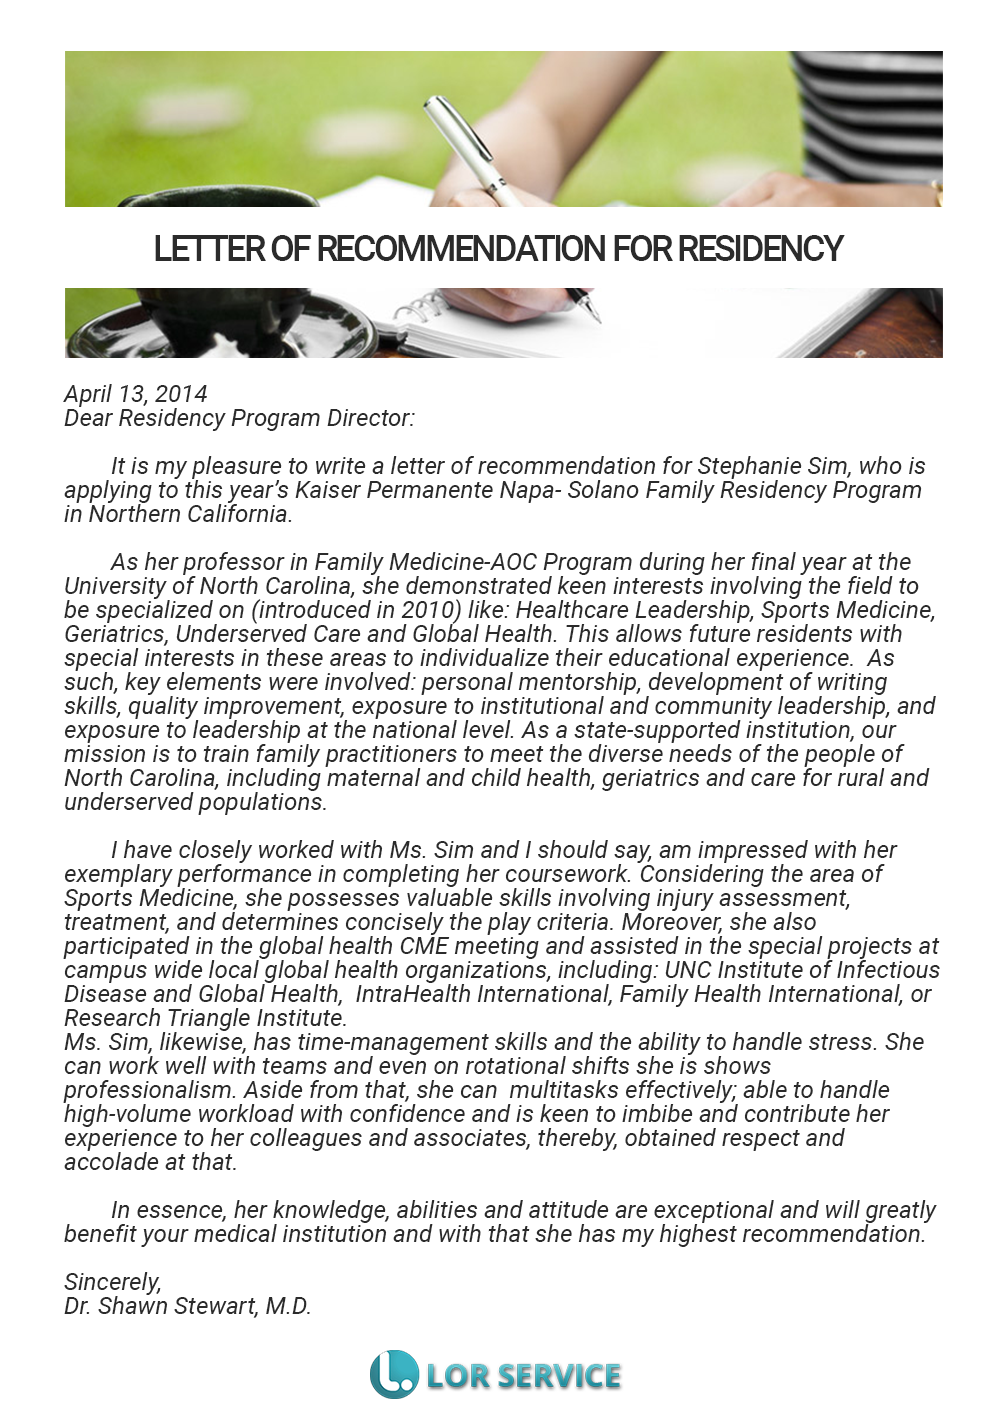 How To Write Letter Of Recommendation For Residency